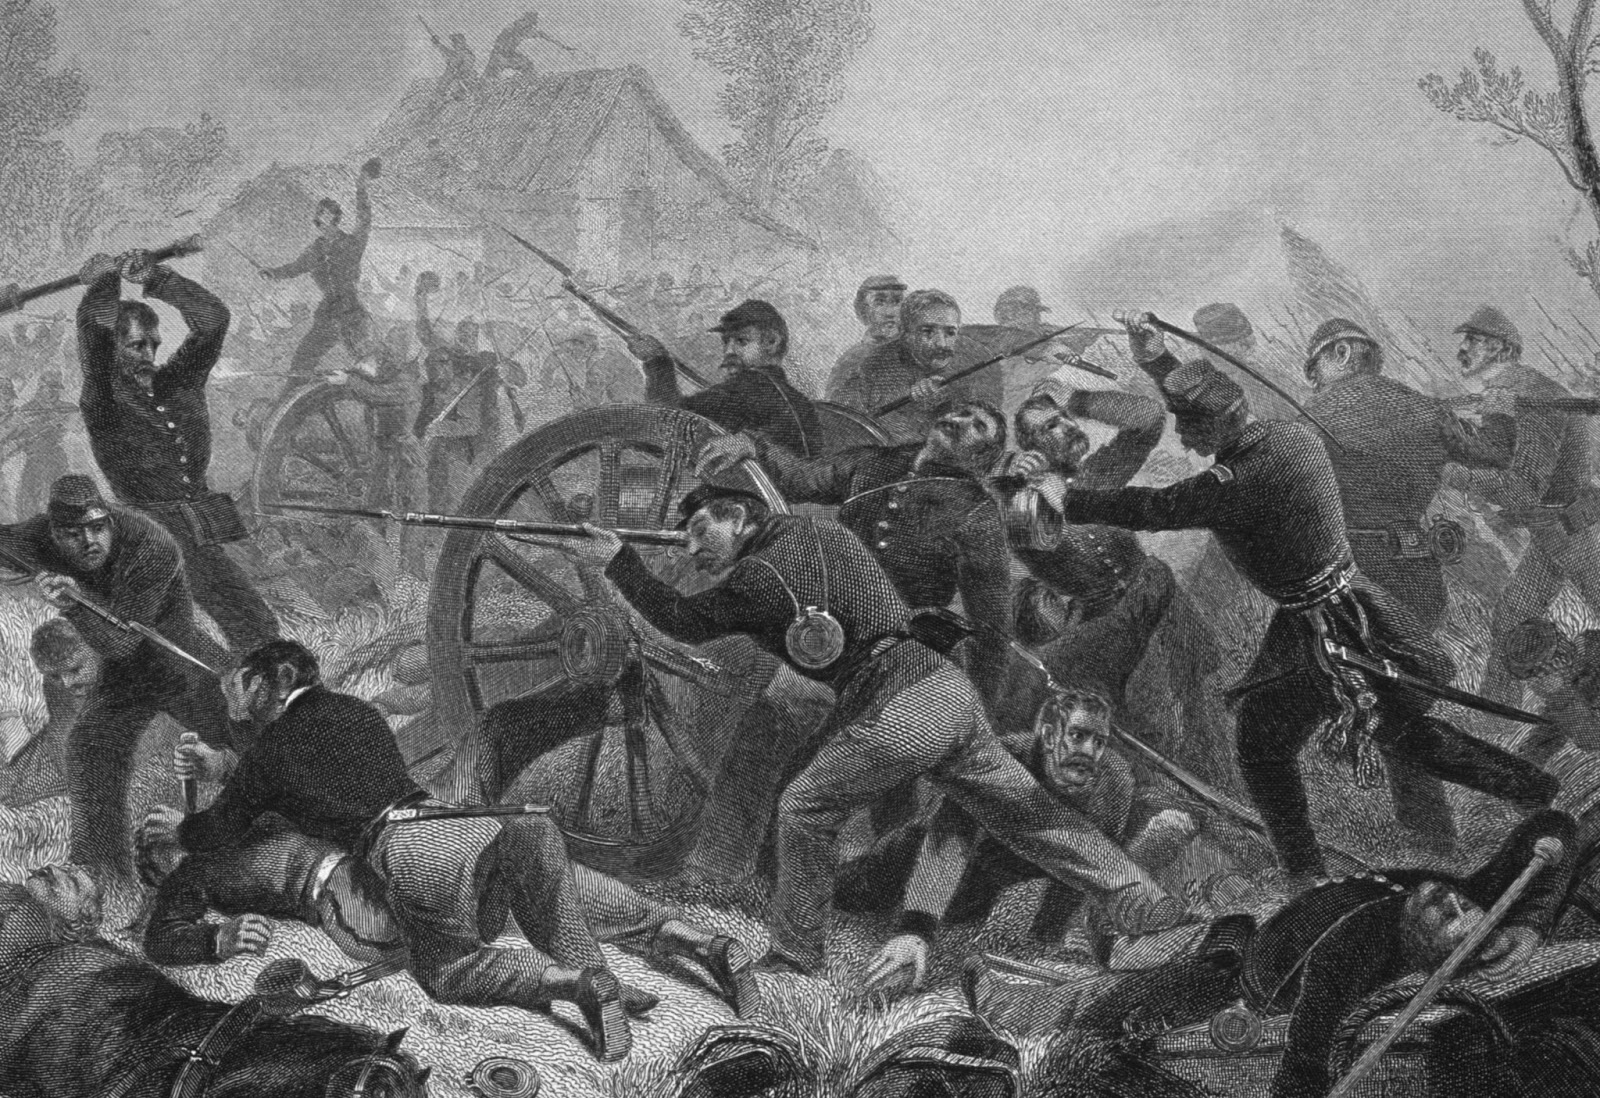 history of the battle of shiloh The battle of shiloh occurred on april 6 and 7, 1862, at pittsburg landing on the tennessee river confederate general albert sidney johnston attacked a union army under the command of general ulysses s grant, hoping to repel the union advance.